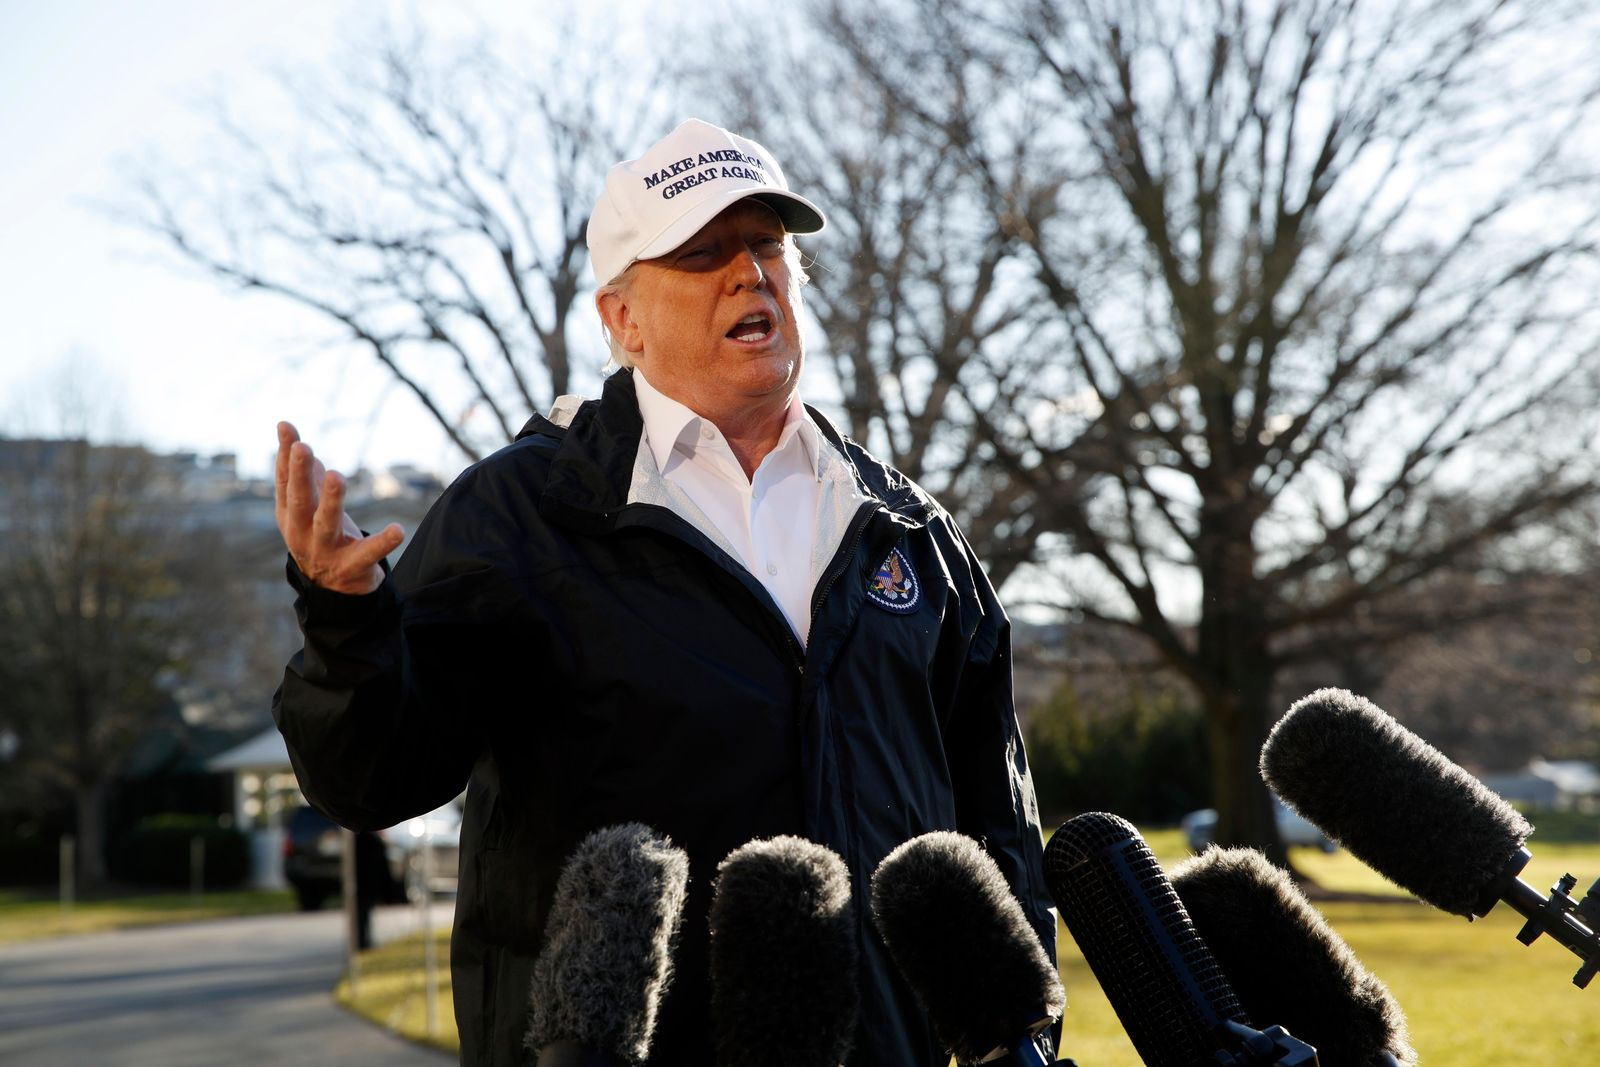 President Donald Trump speaks to the media as he leaves the White House, Thursday Jan. 10, 2019, in Washington, en route for a trip to the border in Texas as the government shutdown continues. (AP Photo/Jacquelyn Martin)